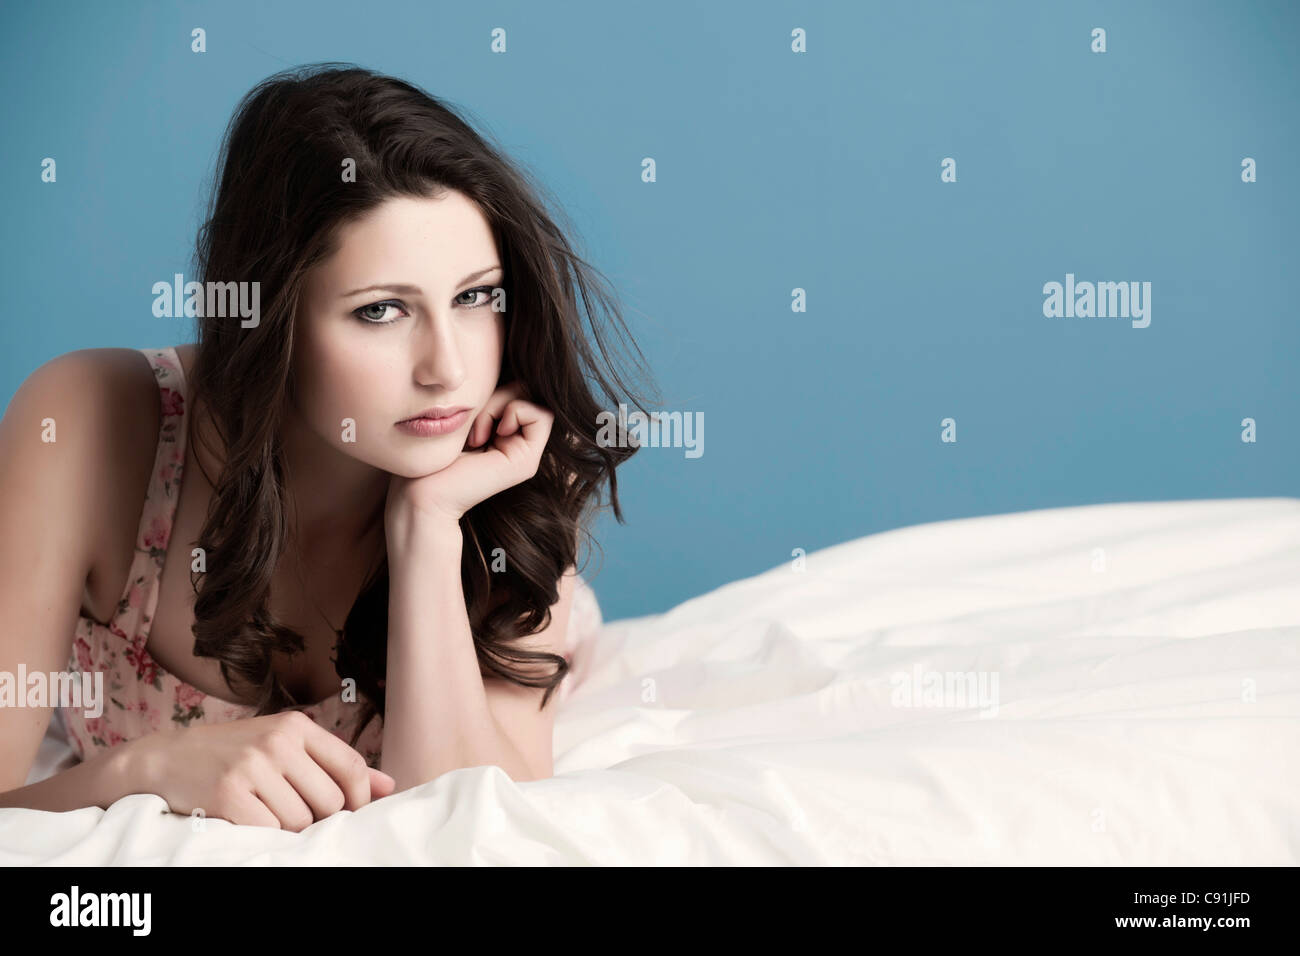 Teenage girl laying on bed - Stock Image